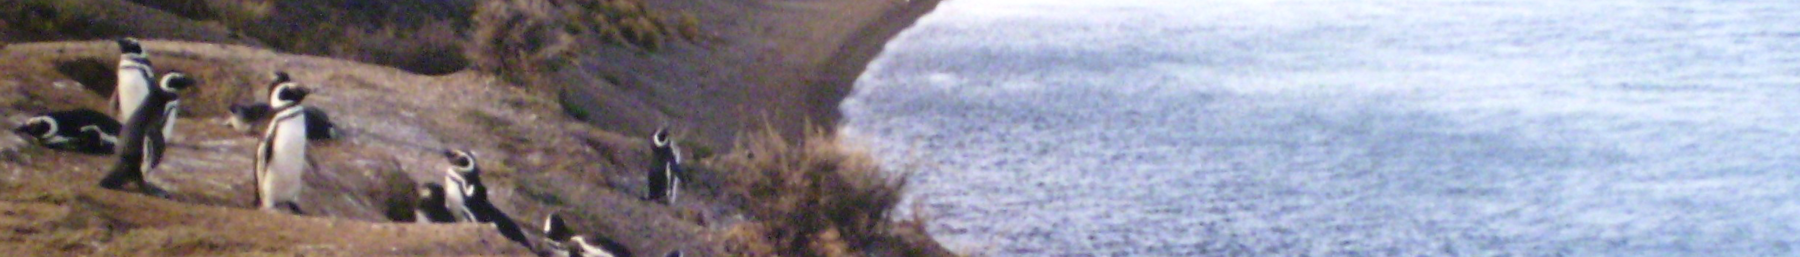 WV banner Chubut province Penguins on Valdes Peninsula.png